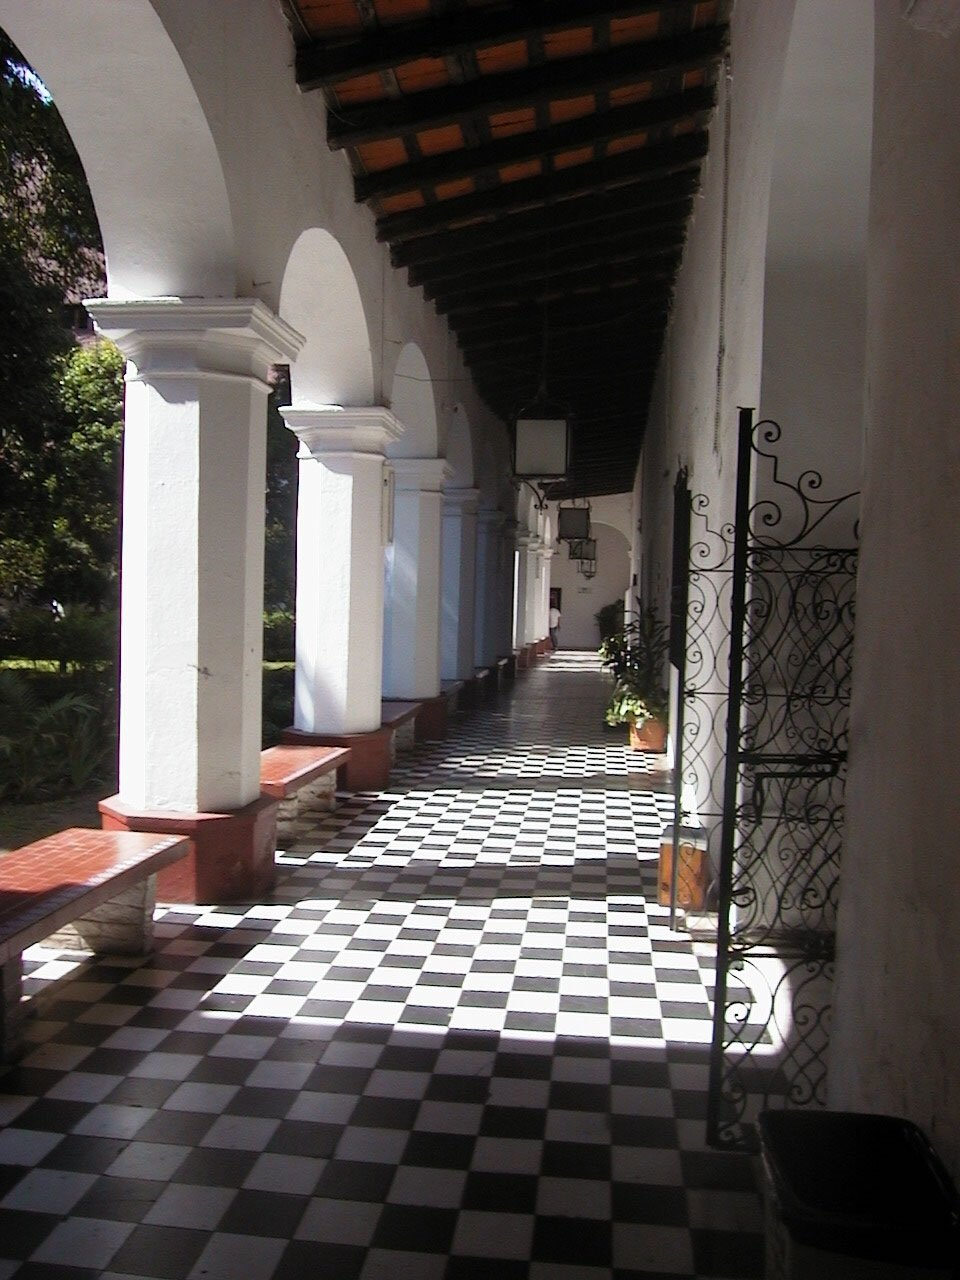 An outdoor corridor with archways